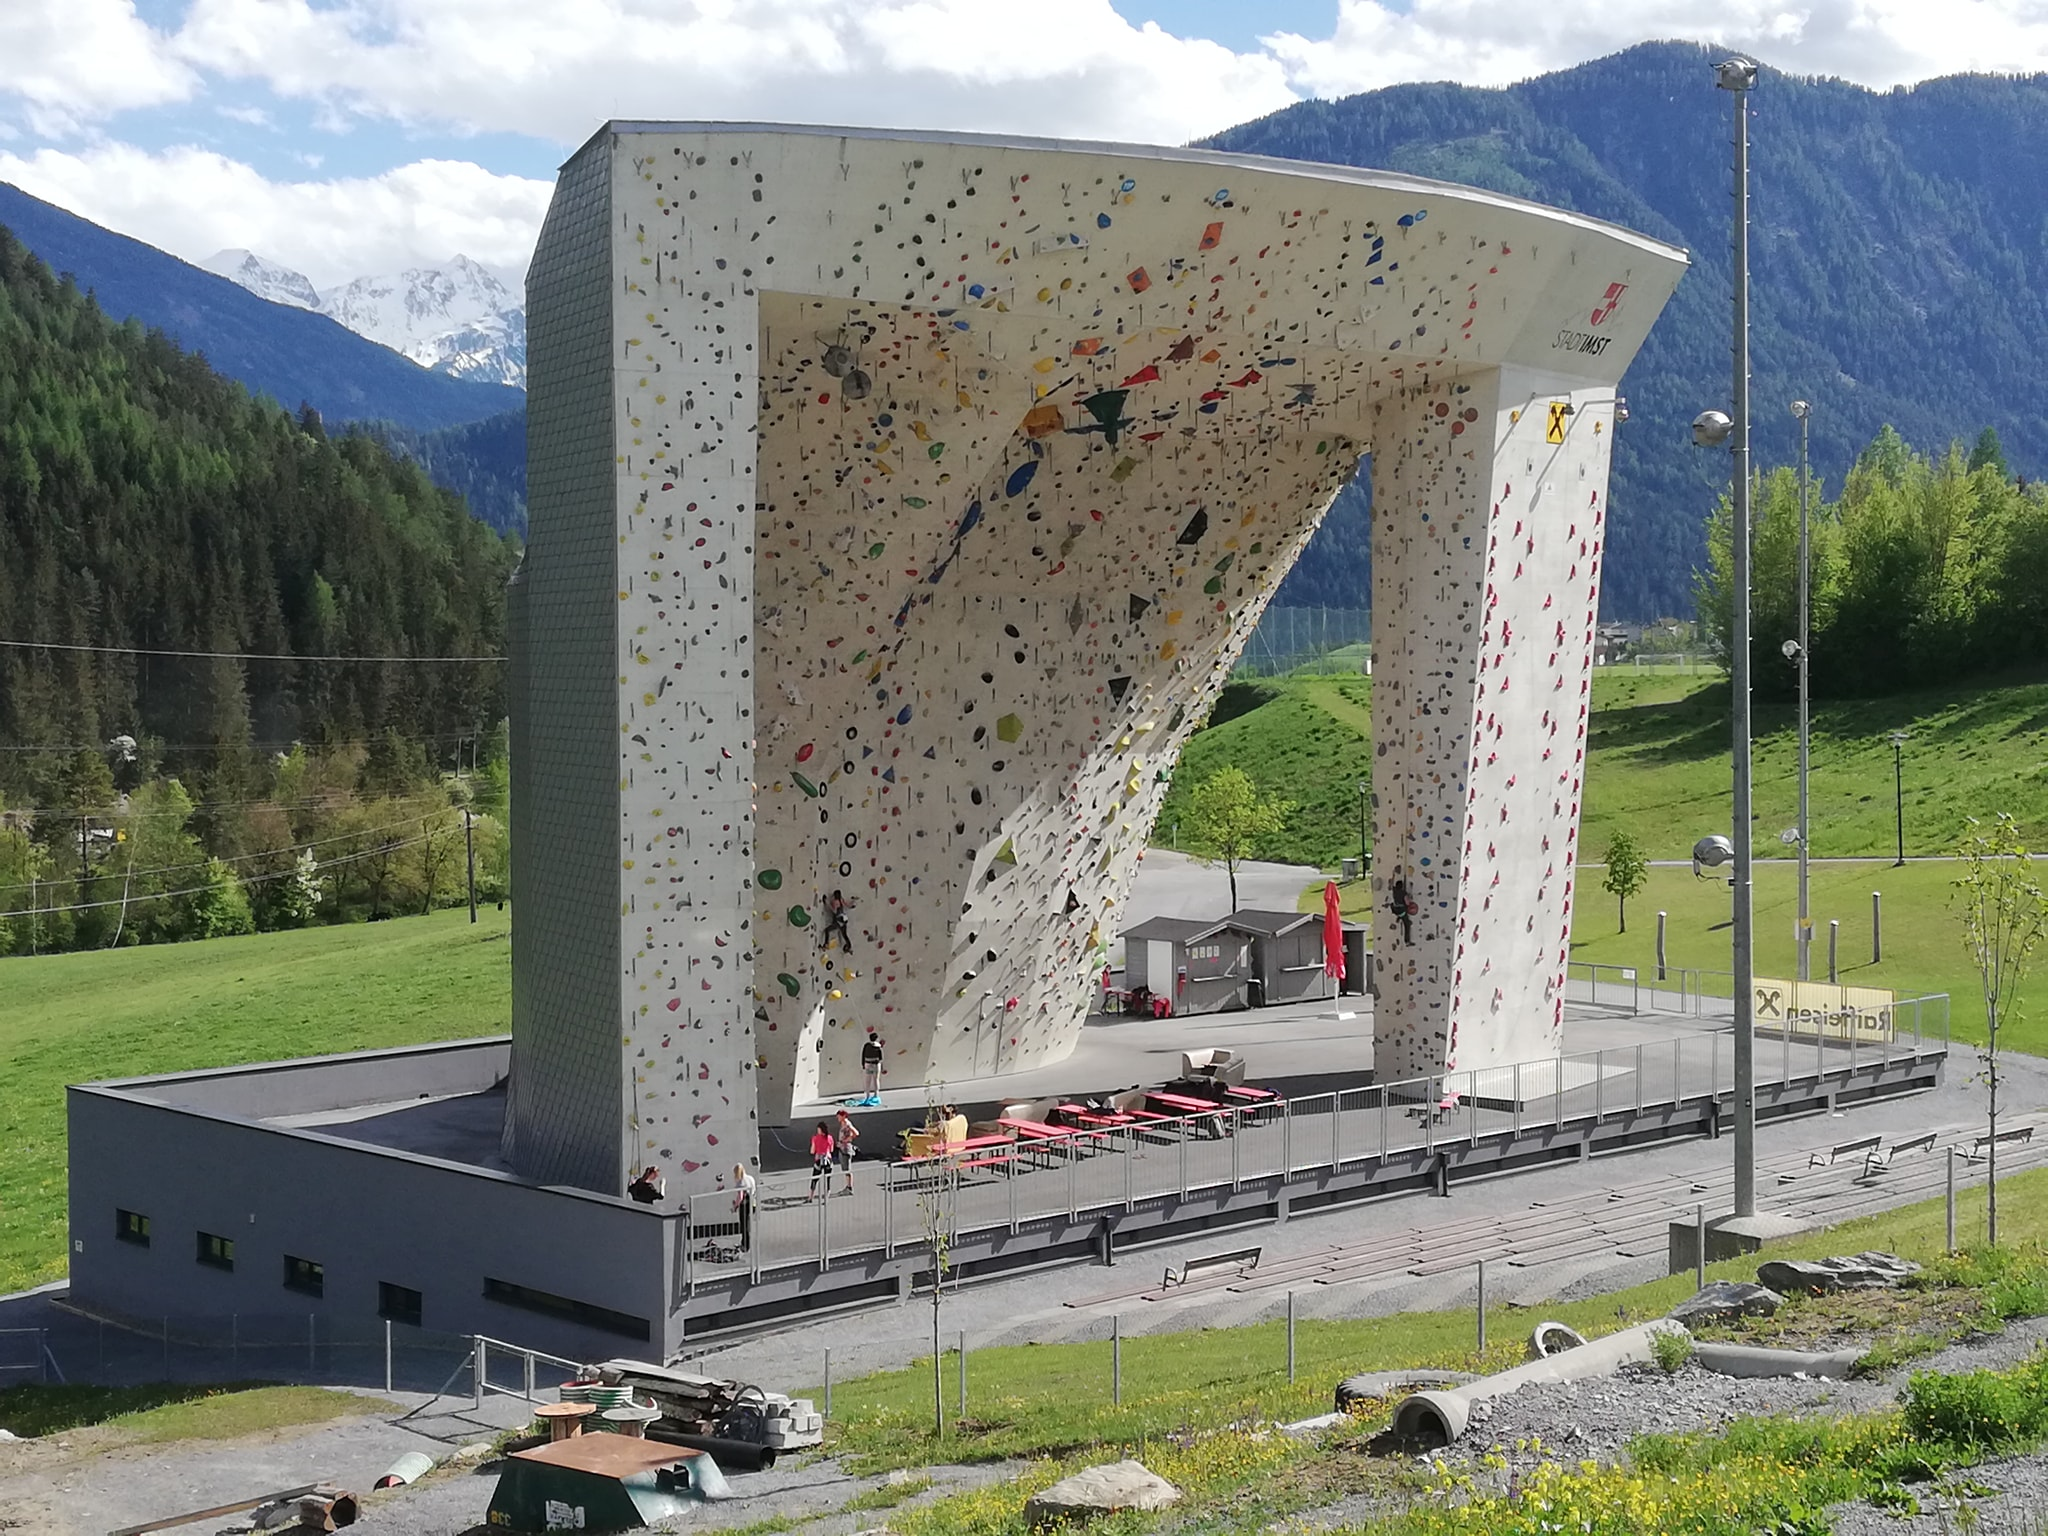 The outdoor wall at Kletterzentrum Imst in Austria reopened at the beginning of May. Photo: Kletterzentrum Imst